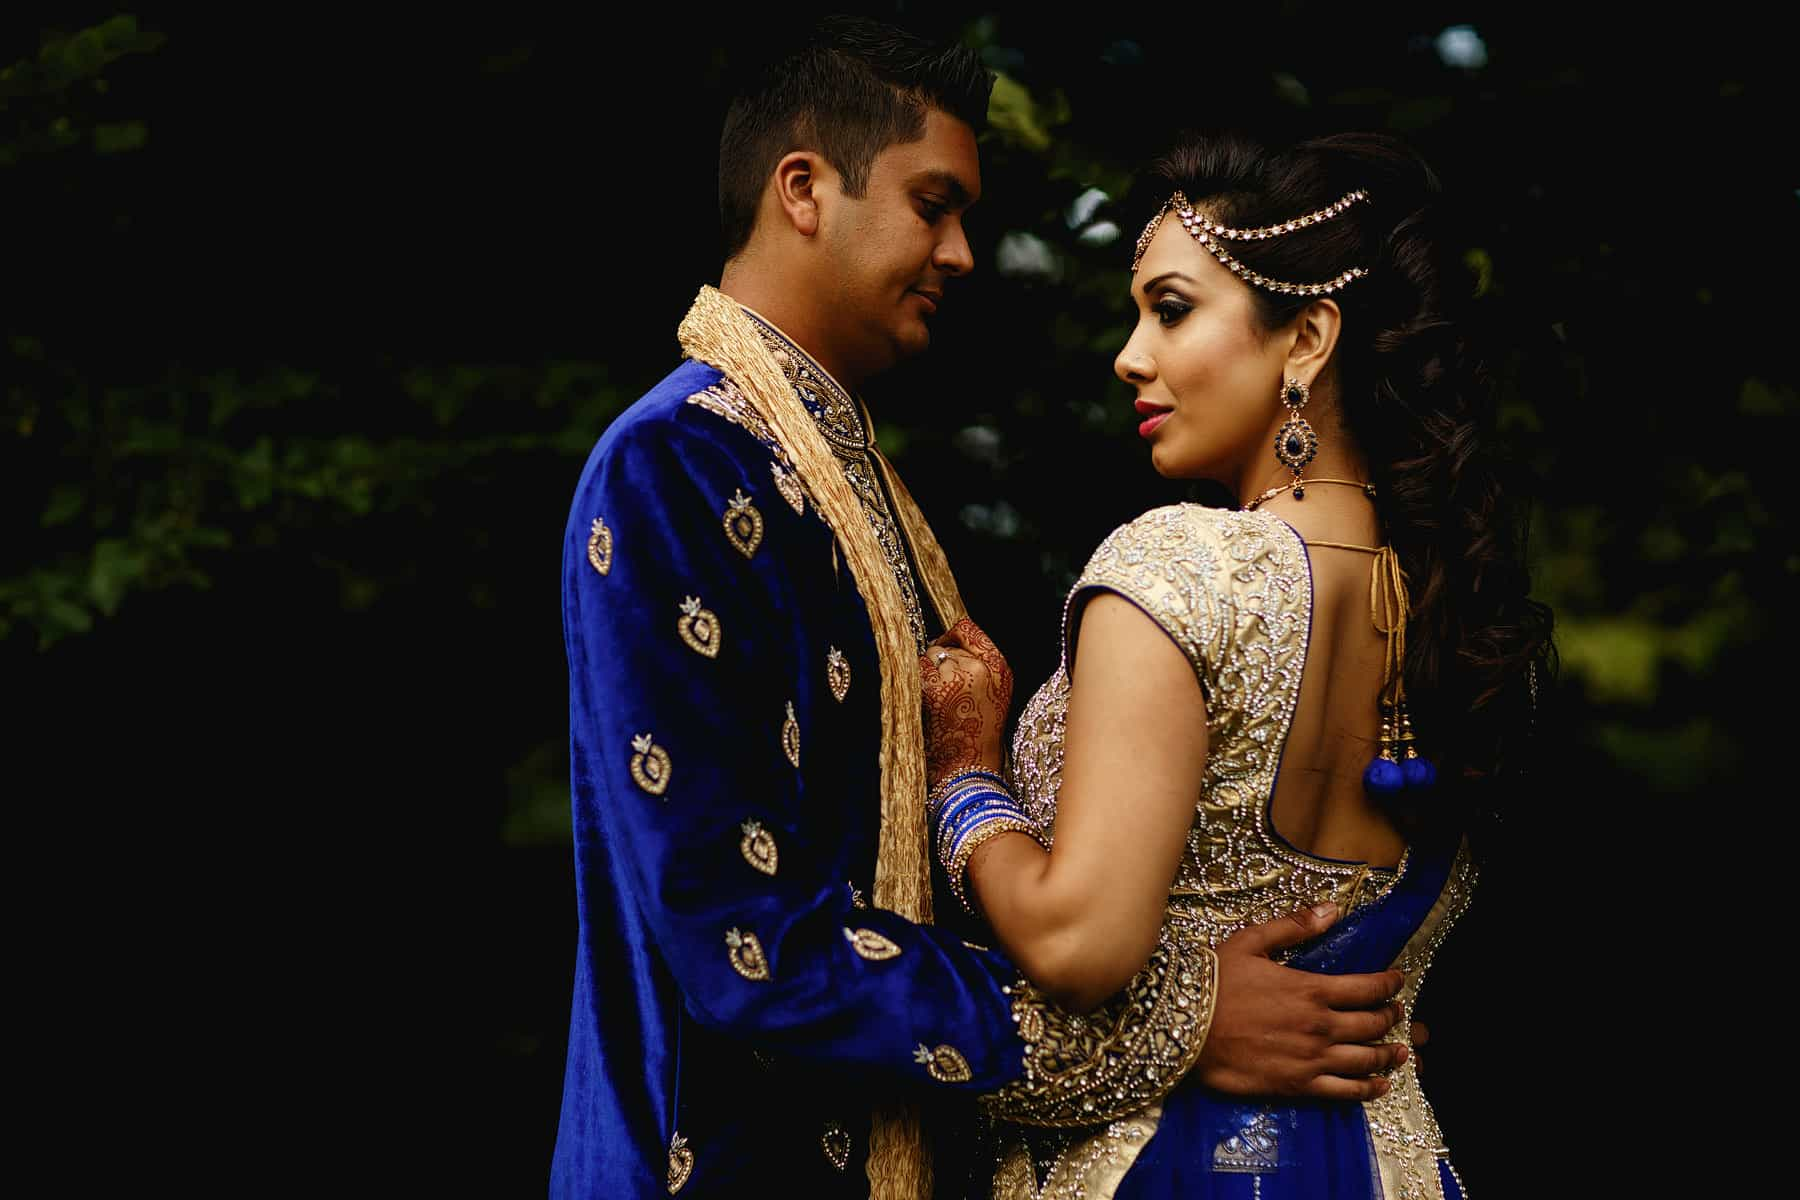 asian wedding photographer ditton manor